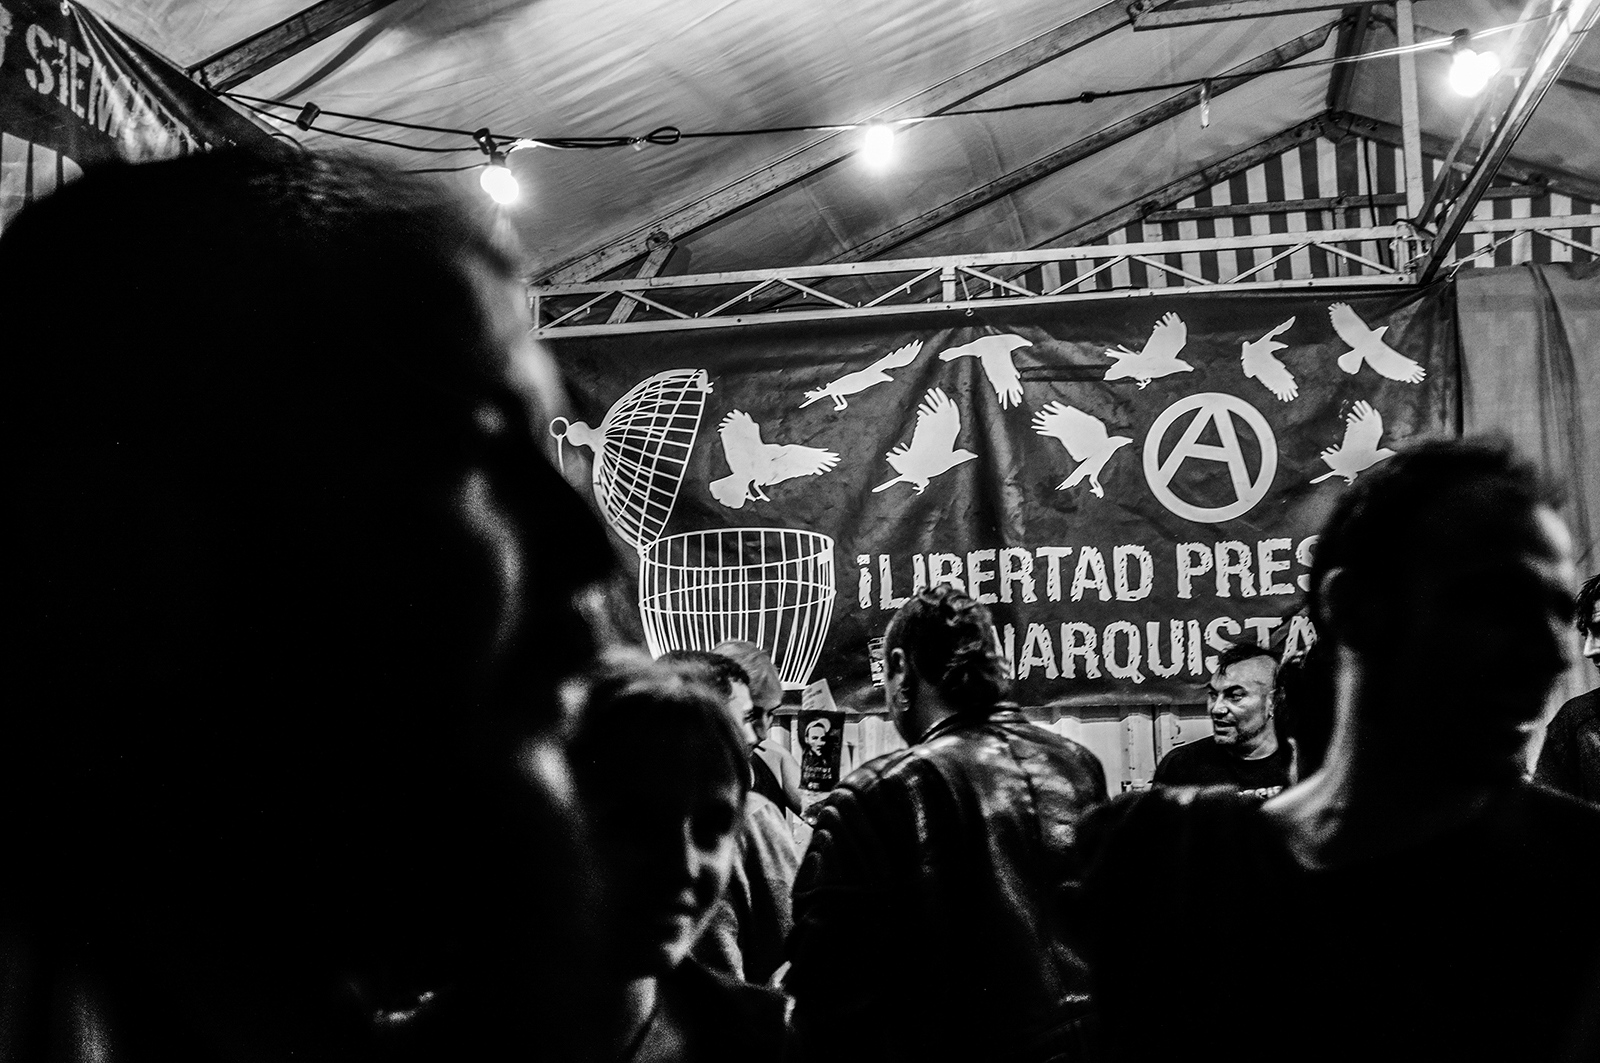 Festival to raise funds for Anarchist Prisoners